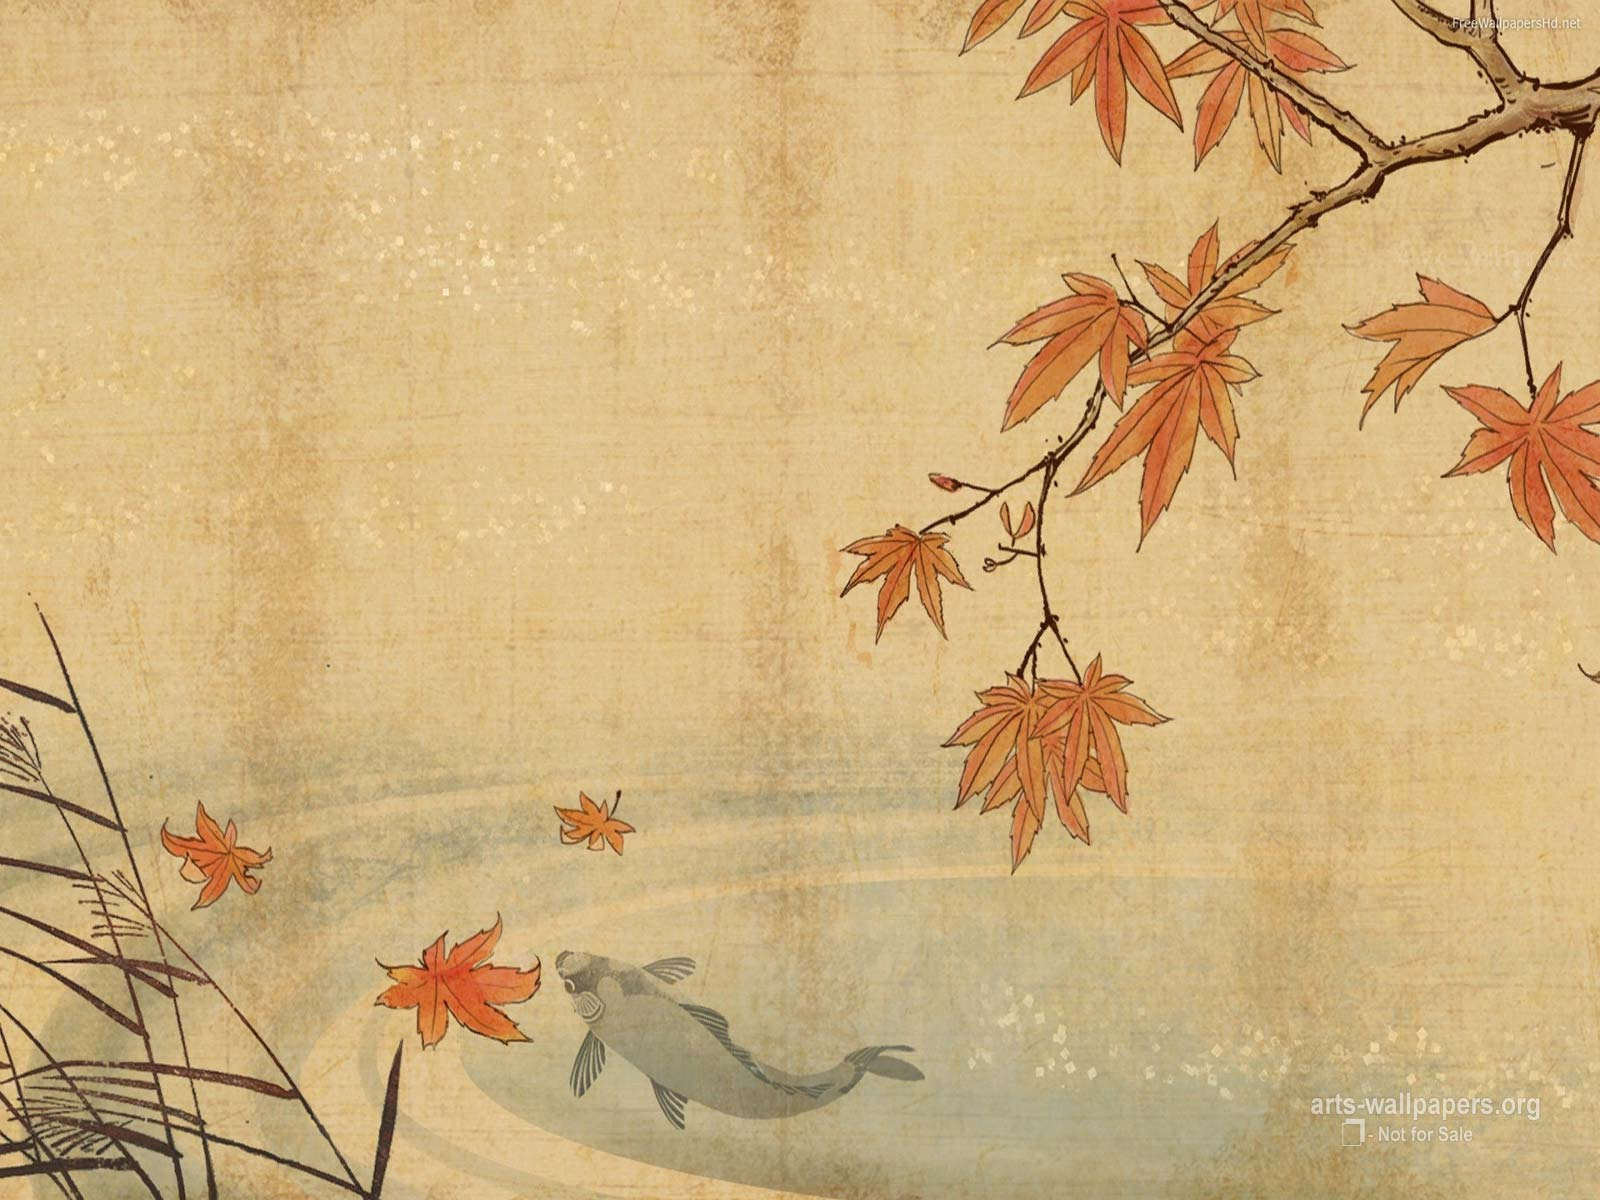 Chinese Art Wallpapers - Wallpaper Cave